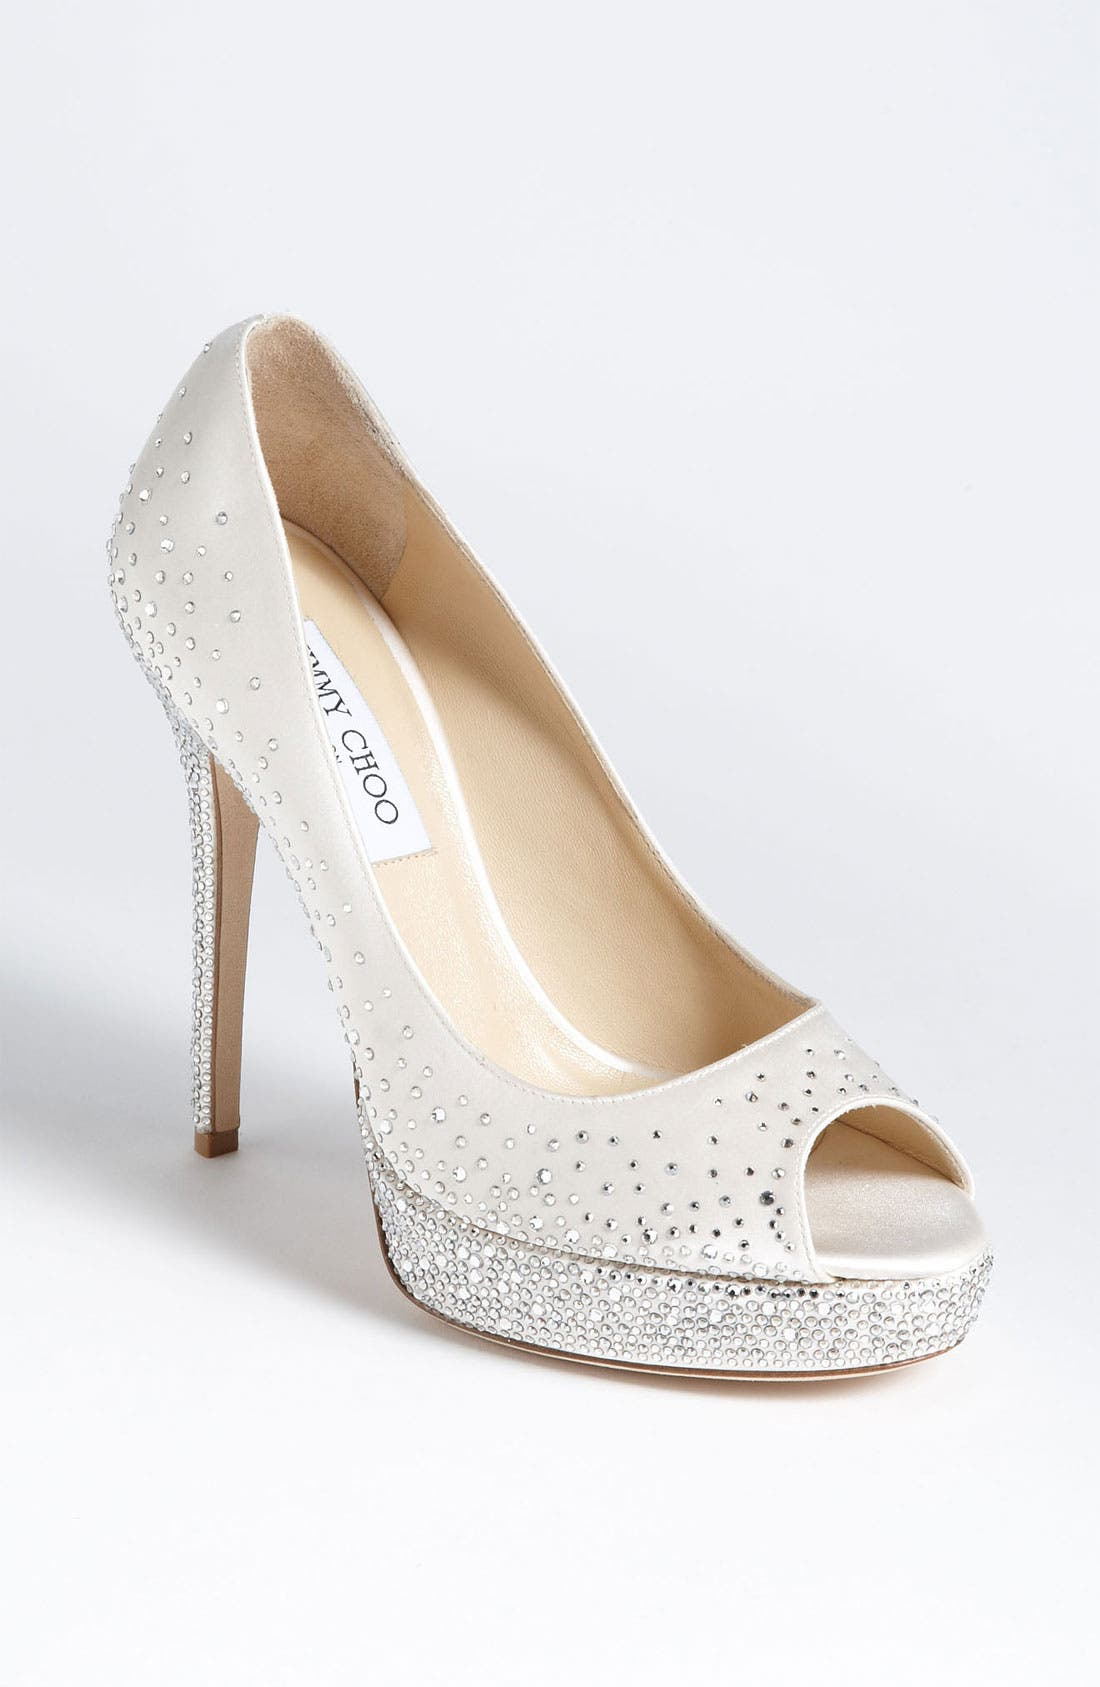 Main Image - Jimmy Choo 'Salt' Pump